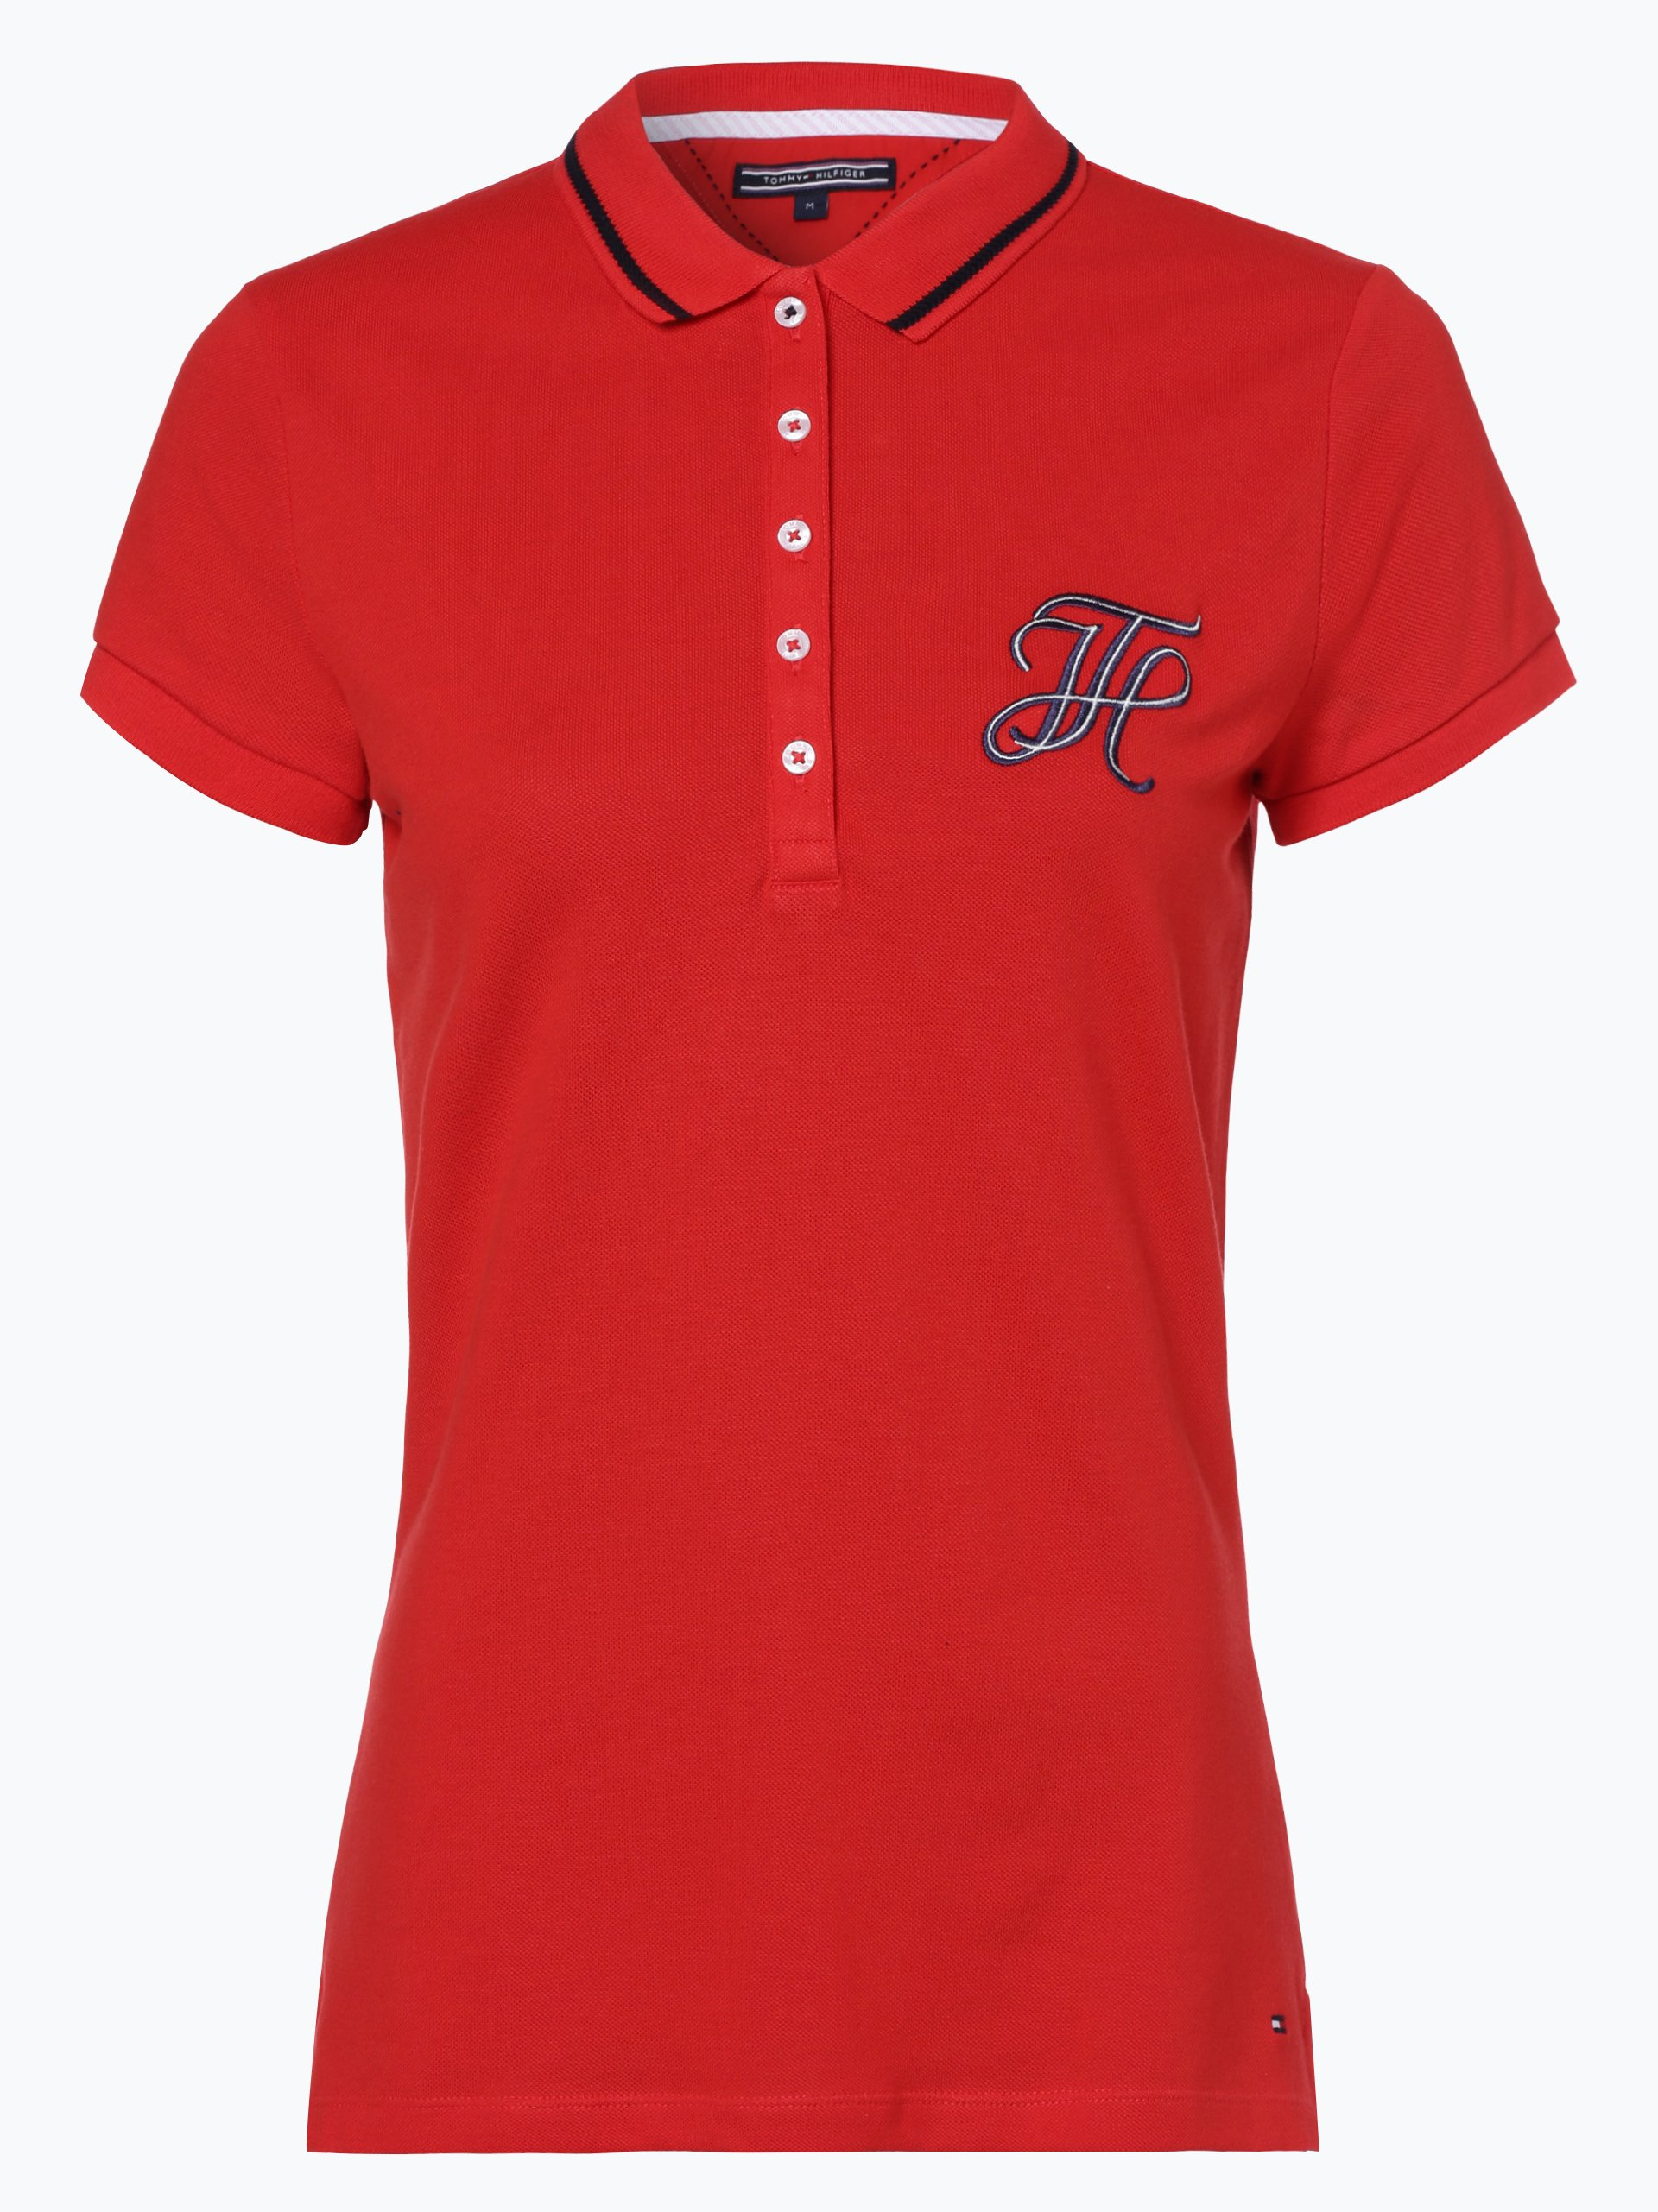 tommy hilfiger damen poloshirt rot uni online kaufen peek und cloppenburg de. Black Bedroom Furniture Sets. Home Design Ideas